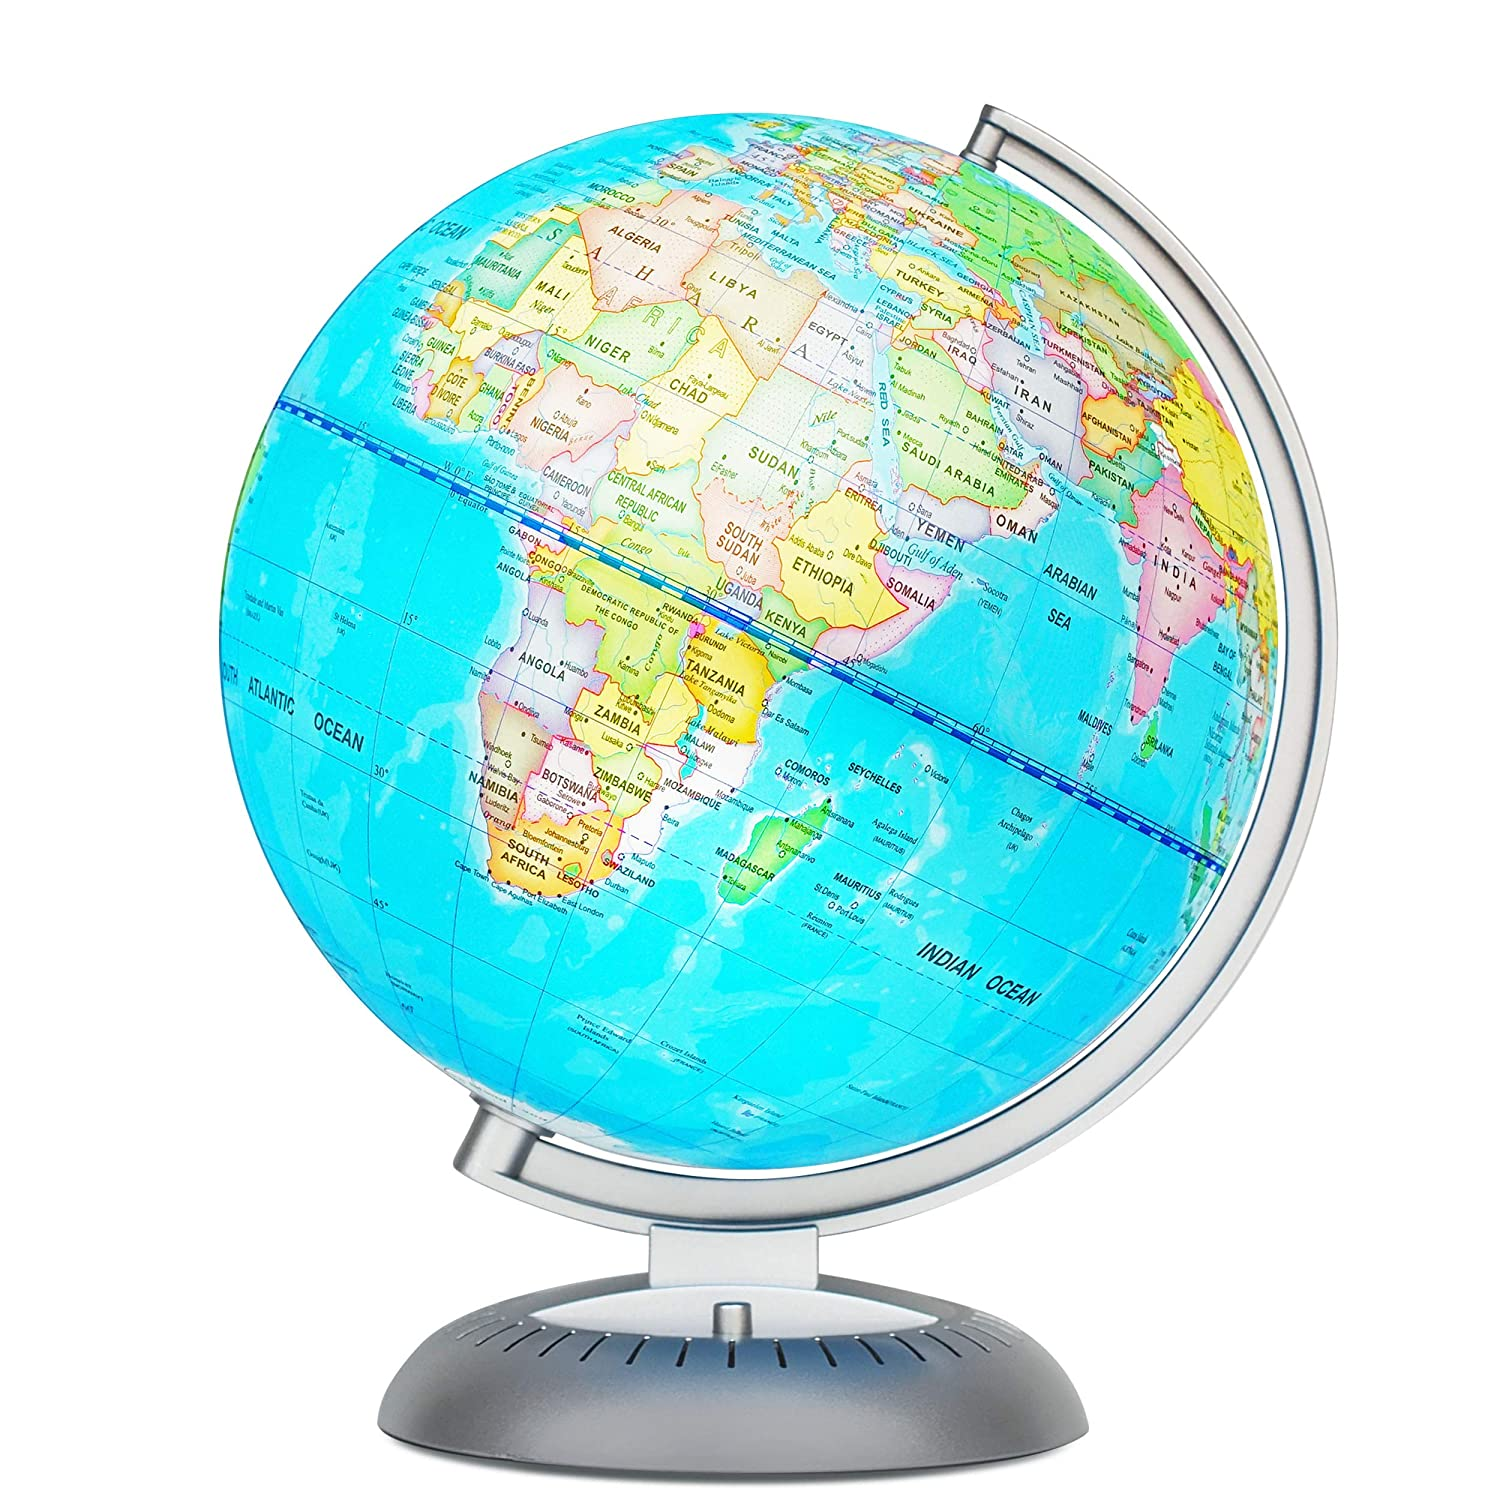 Illuminated World Globe for Kids with Stand – Built-in LED Light Illuminates for Night View